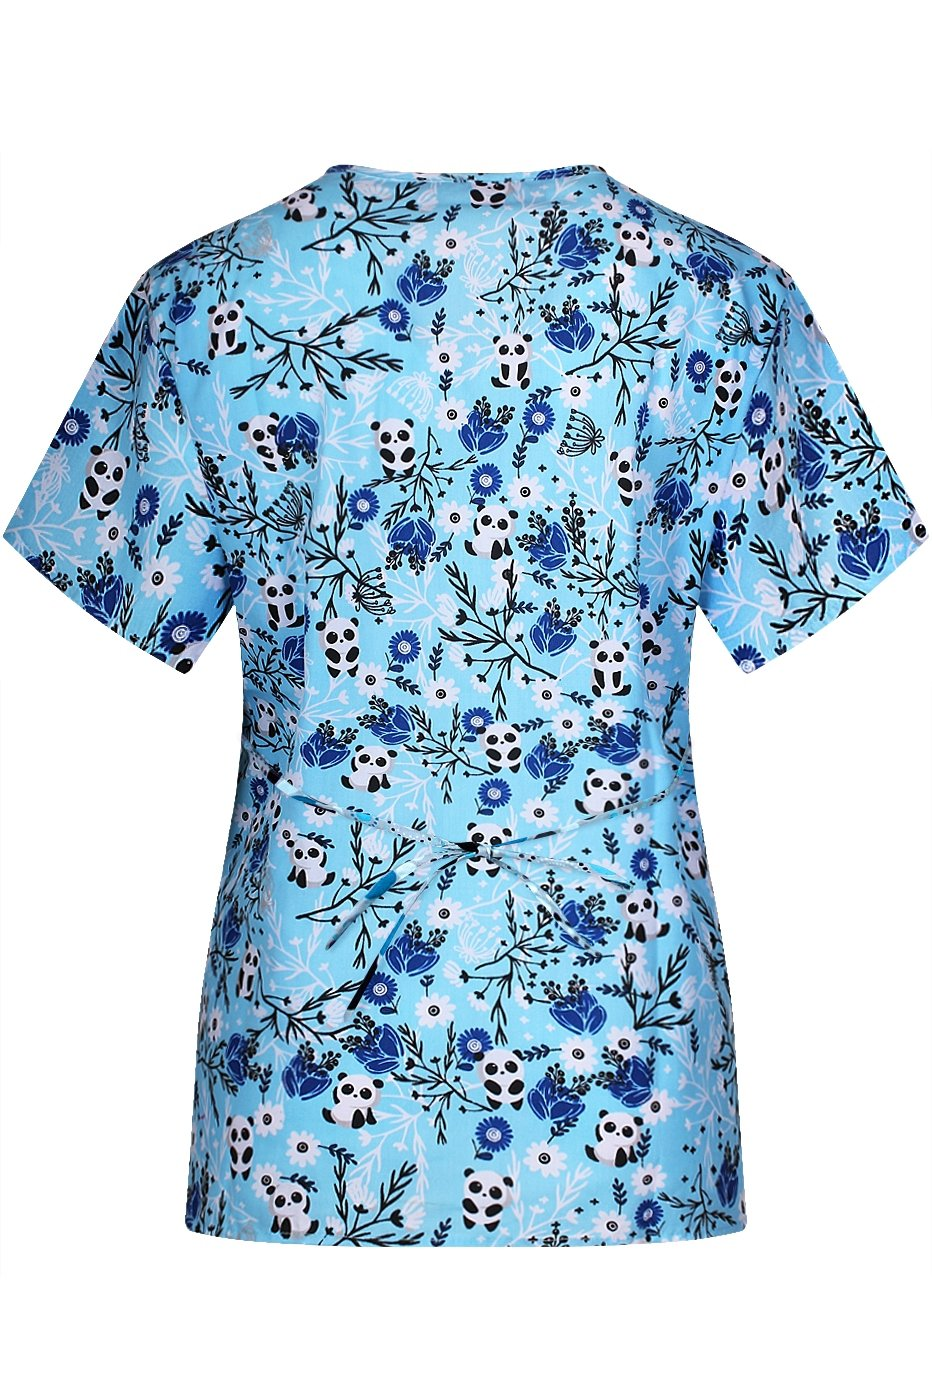 MedPro Women's Printed Mock Wrap Medical Scrub Top Multi Pack White Blue S by MedPro (Image #3)